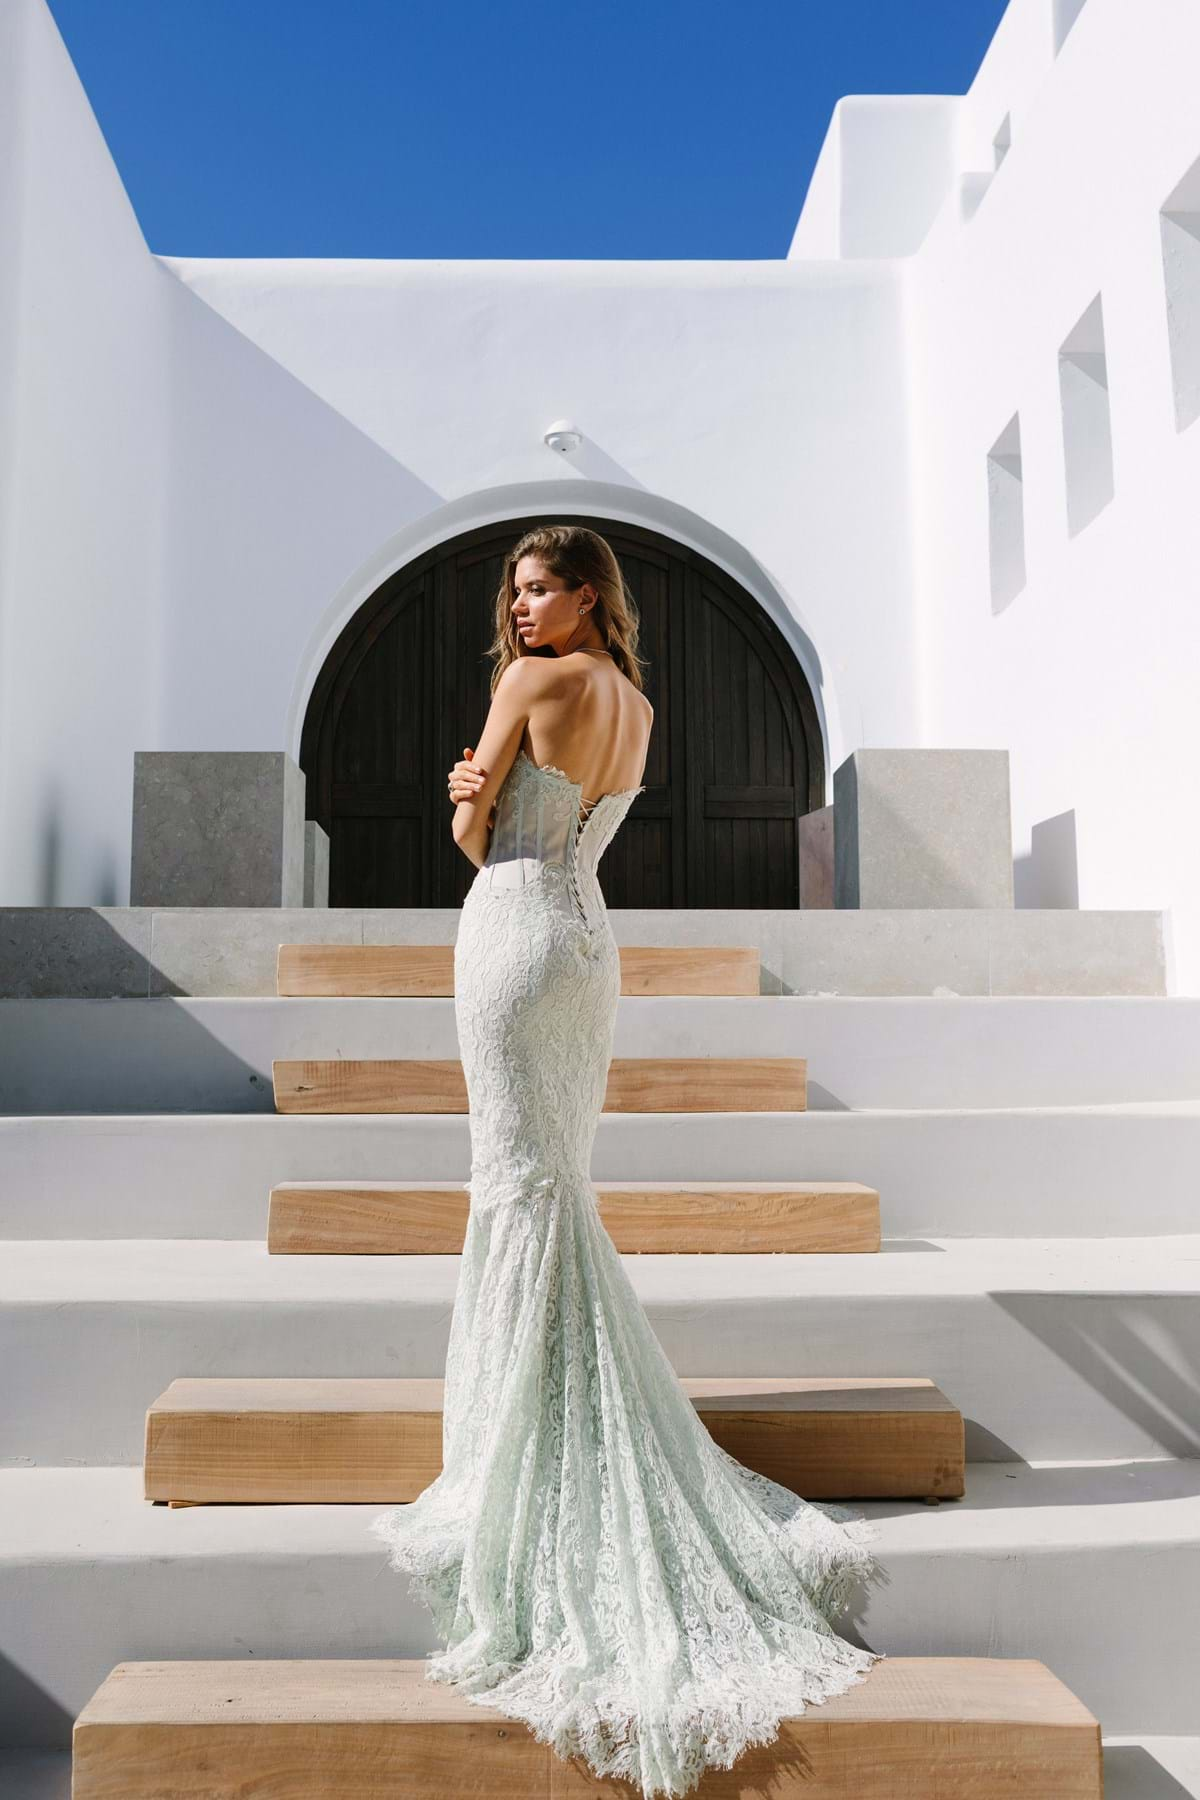 Couture Fashion for a Greece Destination Wedding or Event